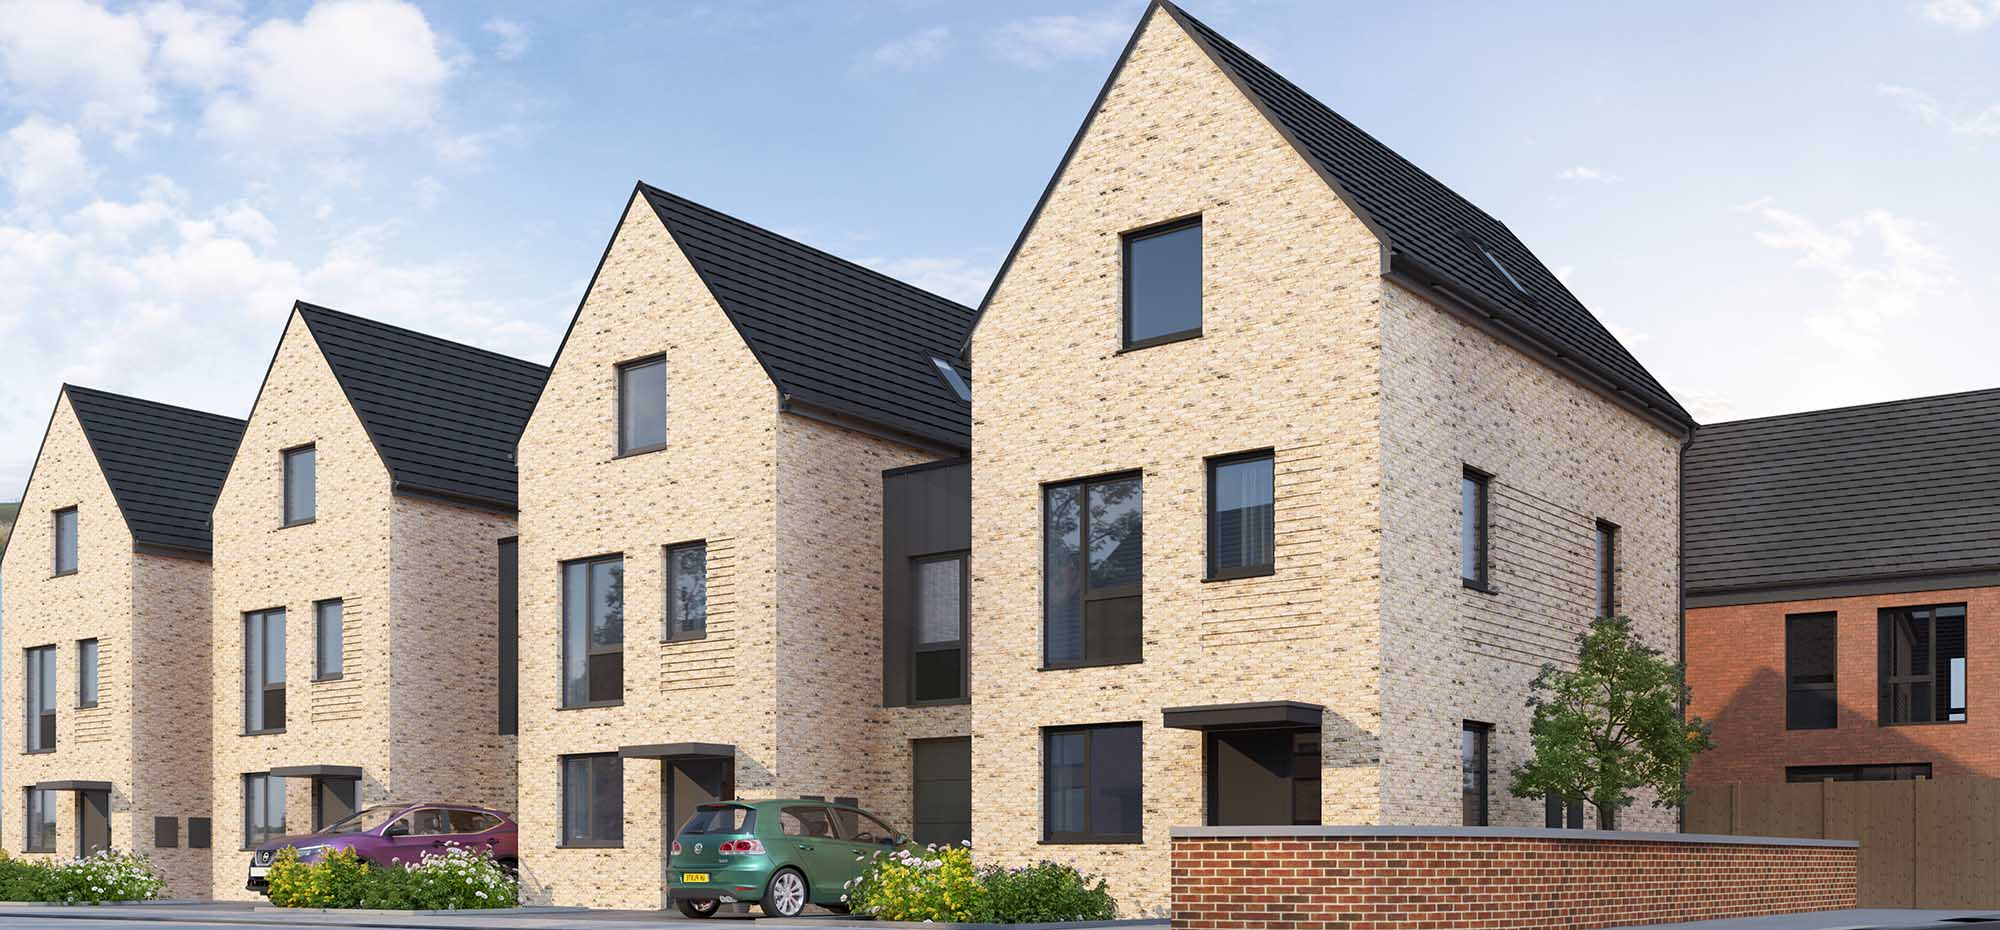 This image shows an external view of the Hollyhock three bedroom, townhouse from Shape Homes York.